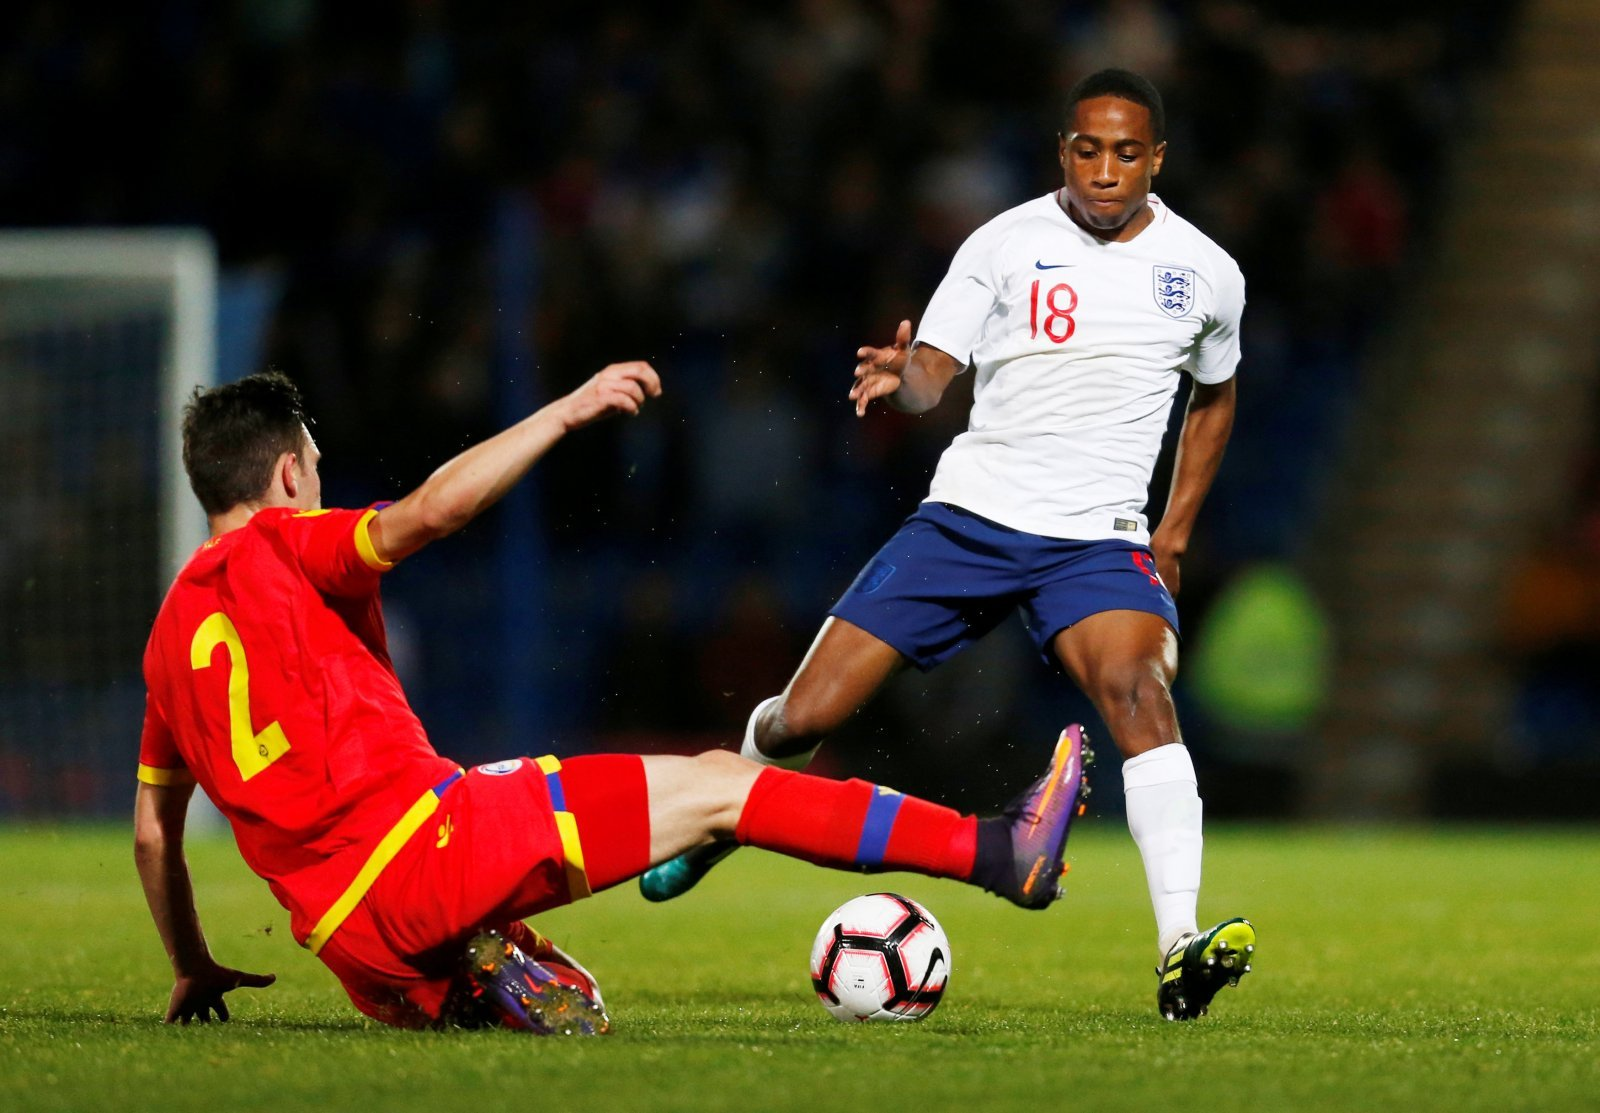 Tottenham fans on Twitter keen to see Pochettino use Walker-Peters when Southampton visit